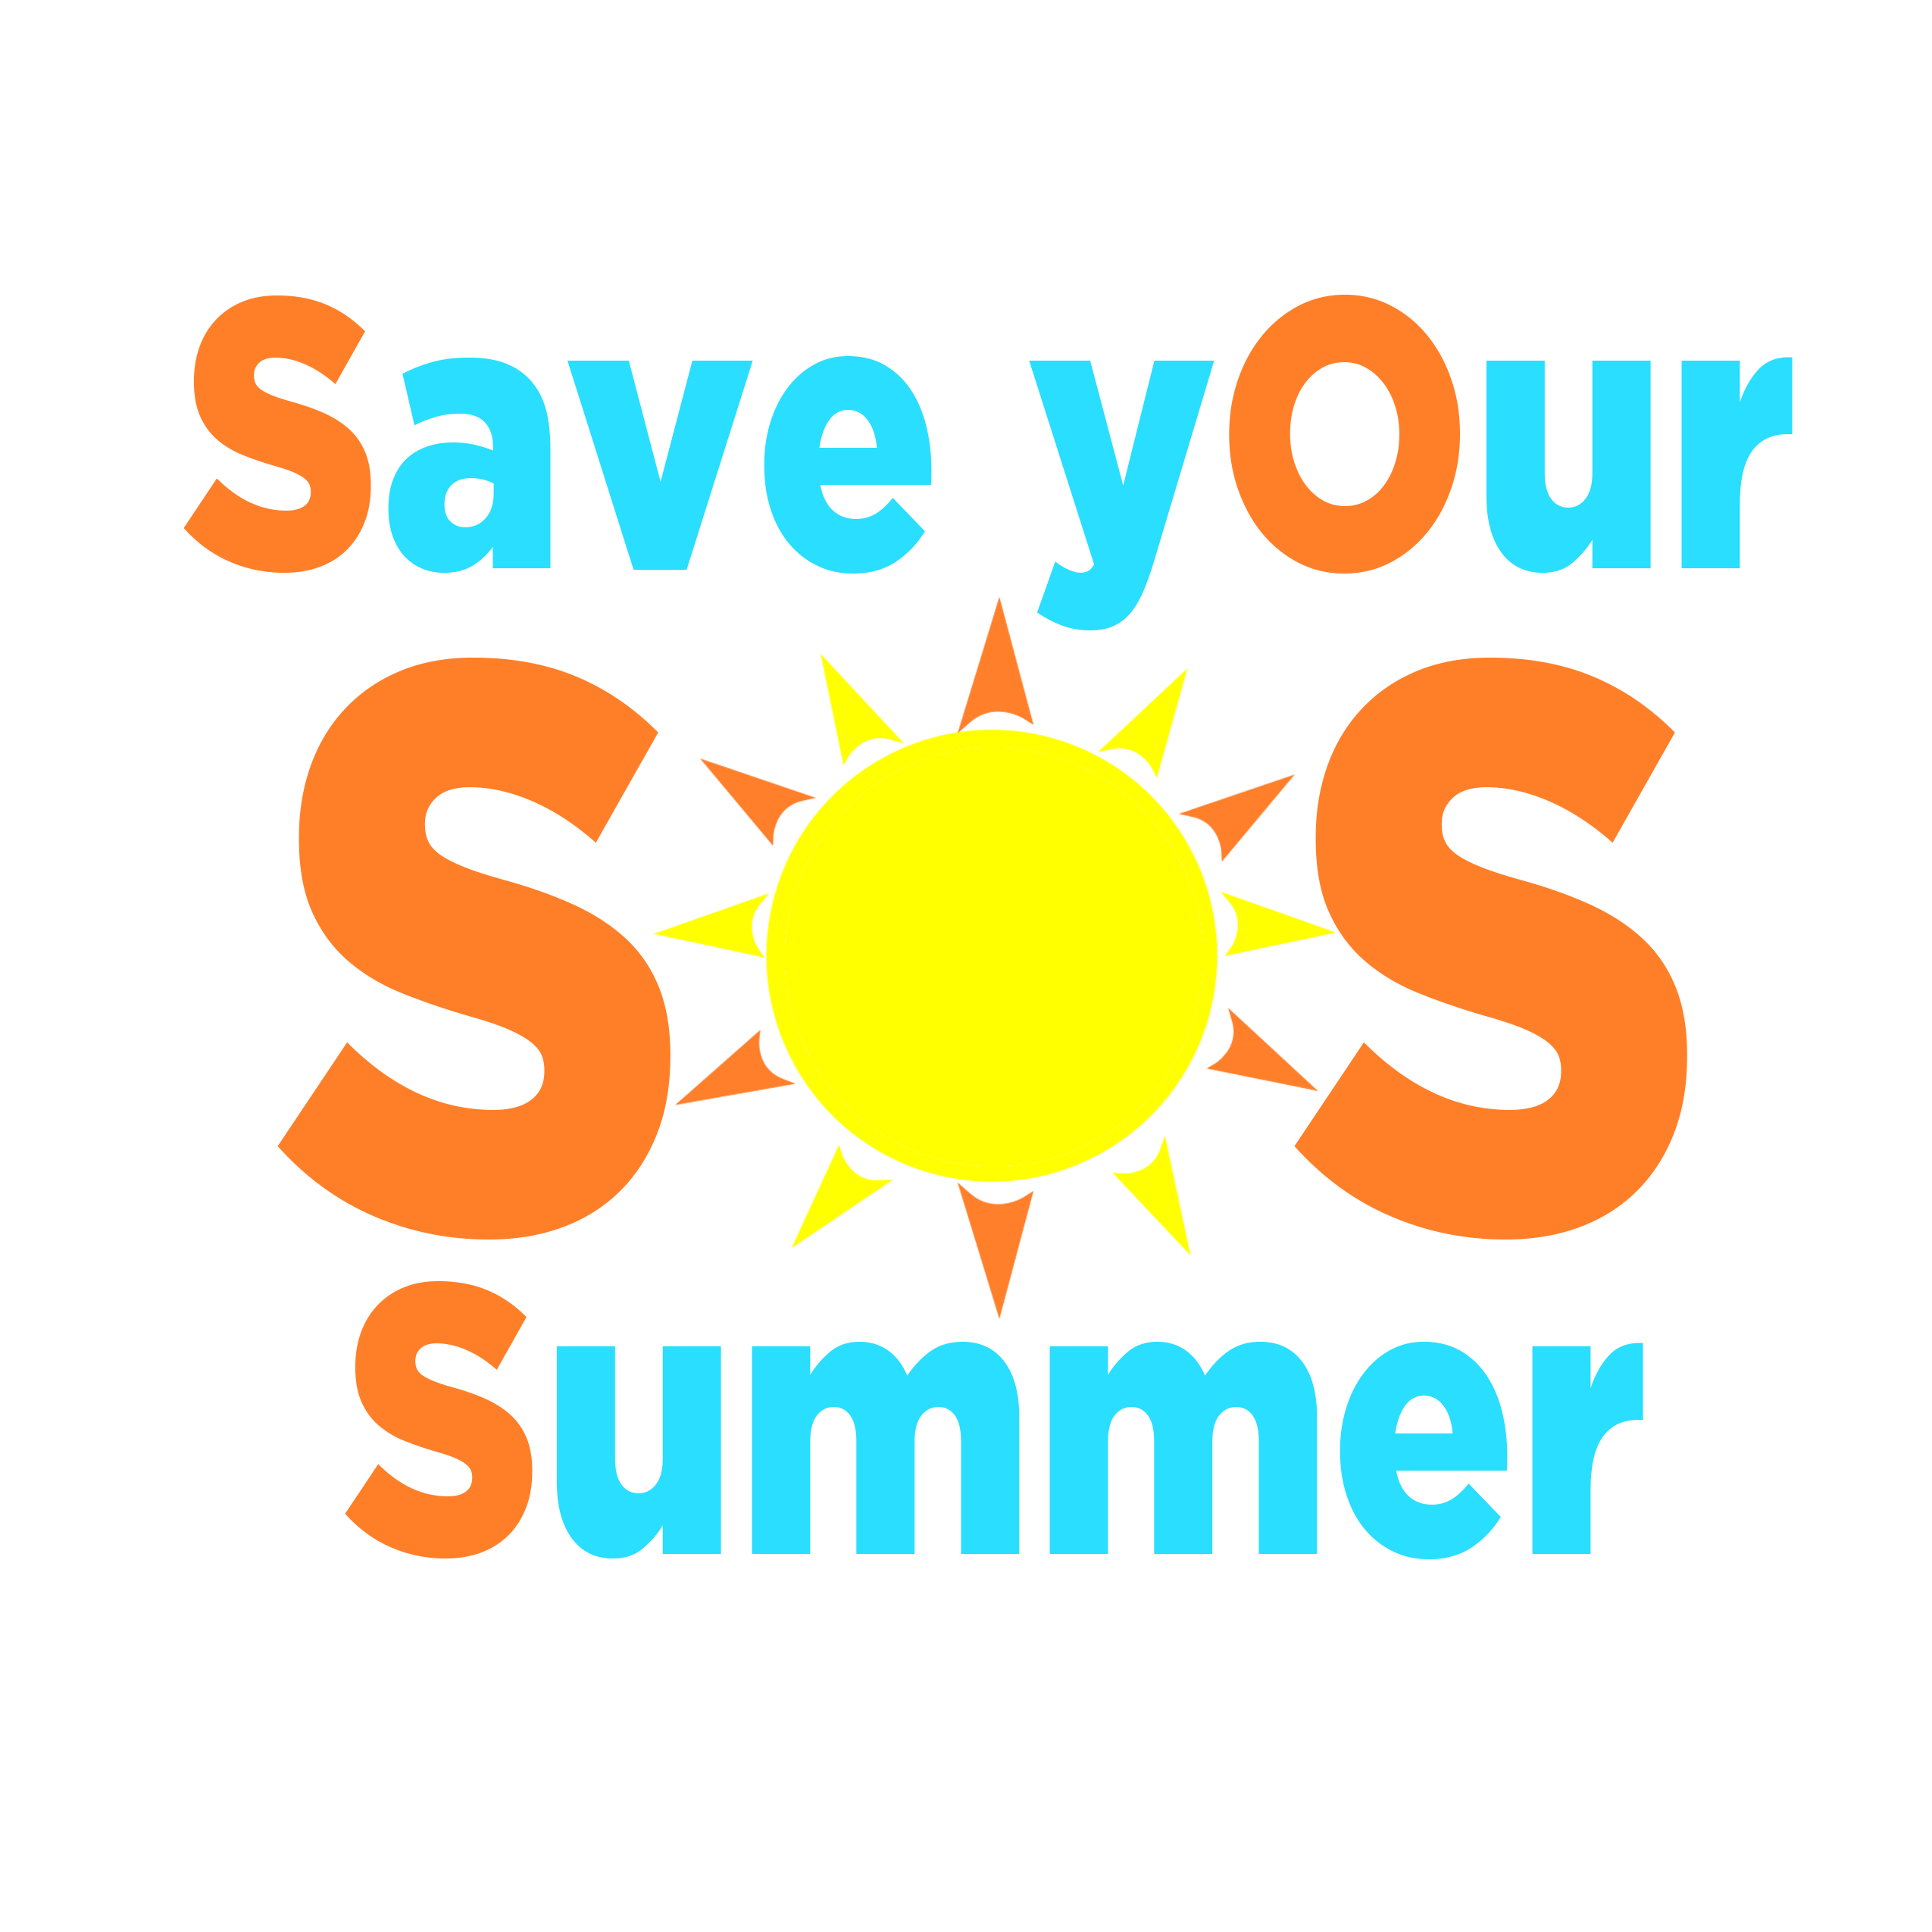 Save Your Summer